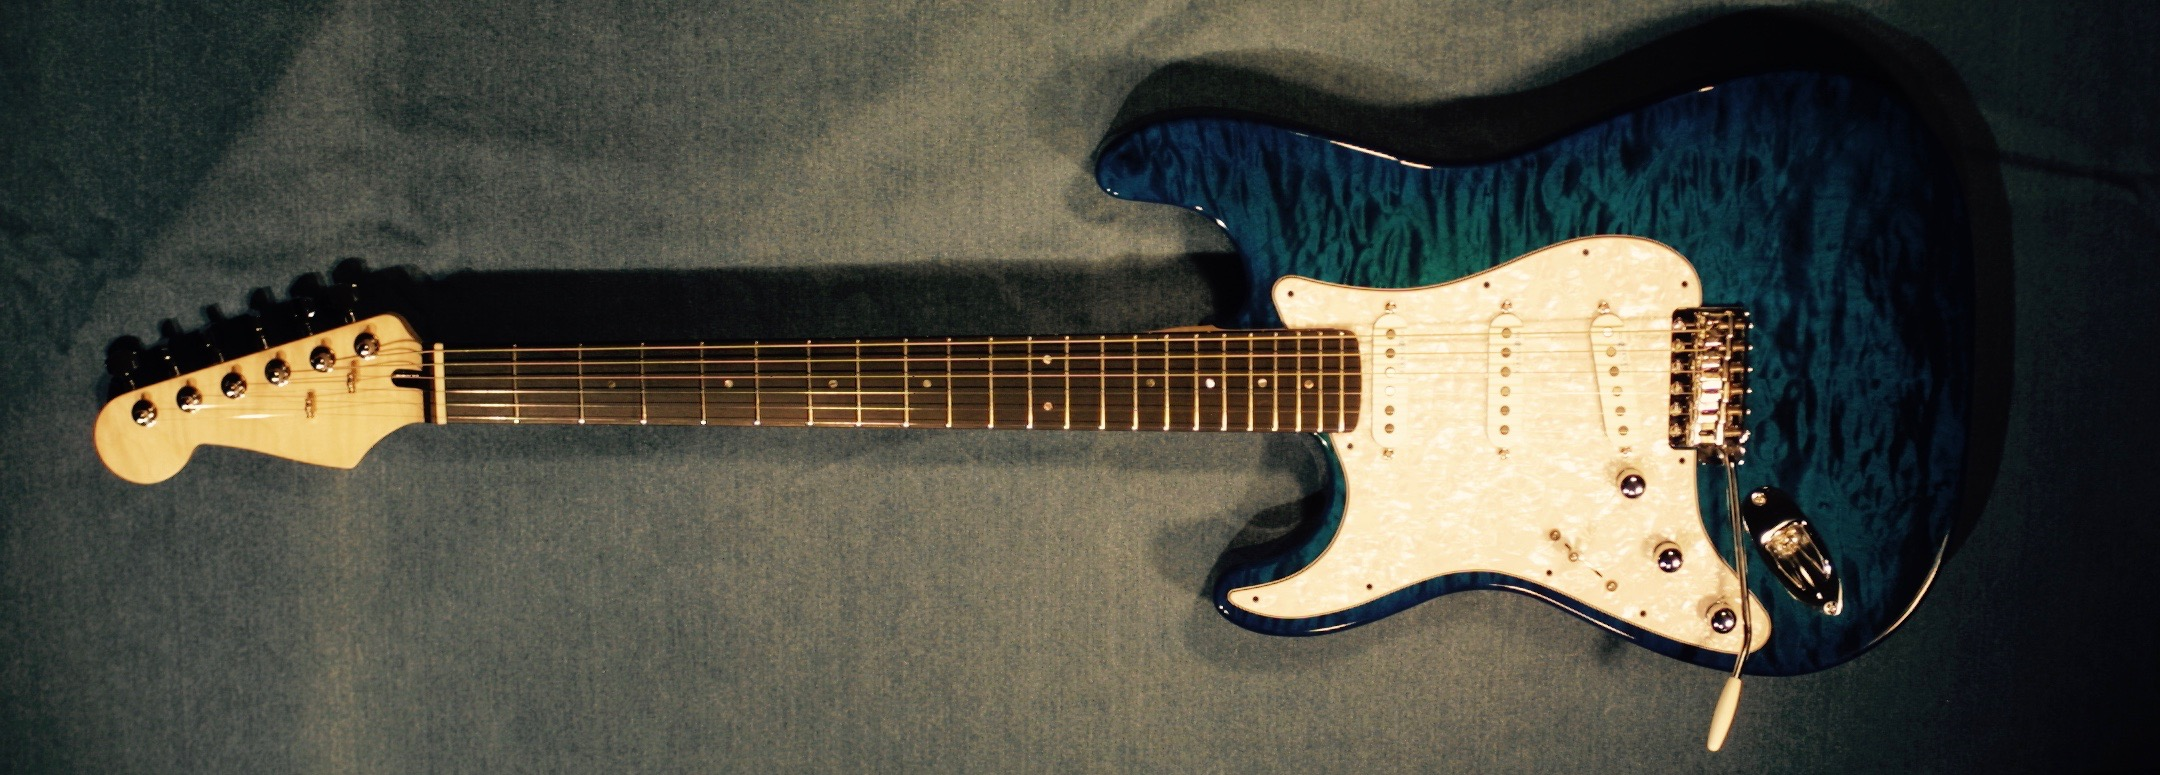 Stratocaster Gallucci Lutherie